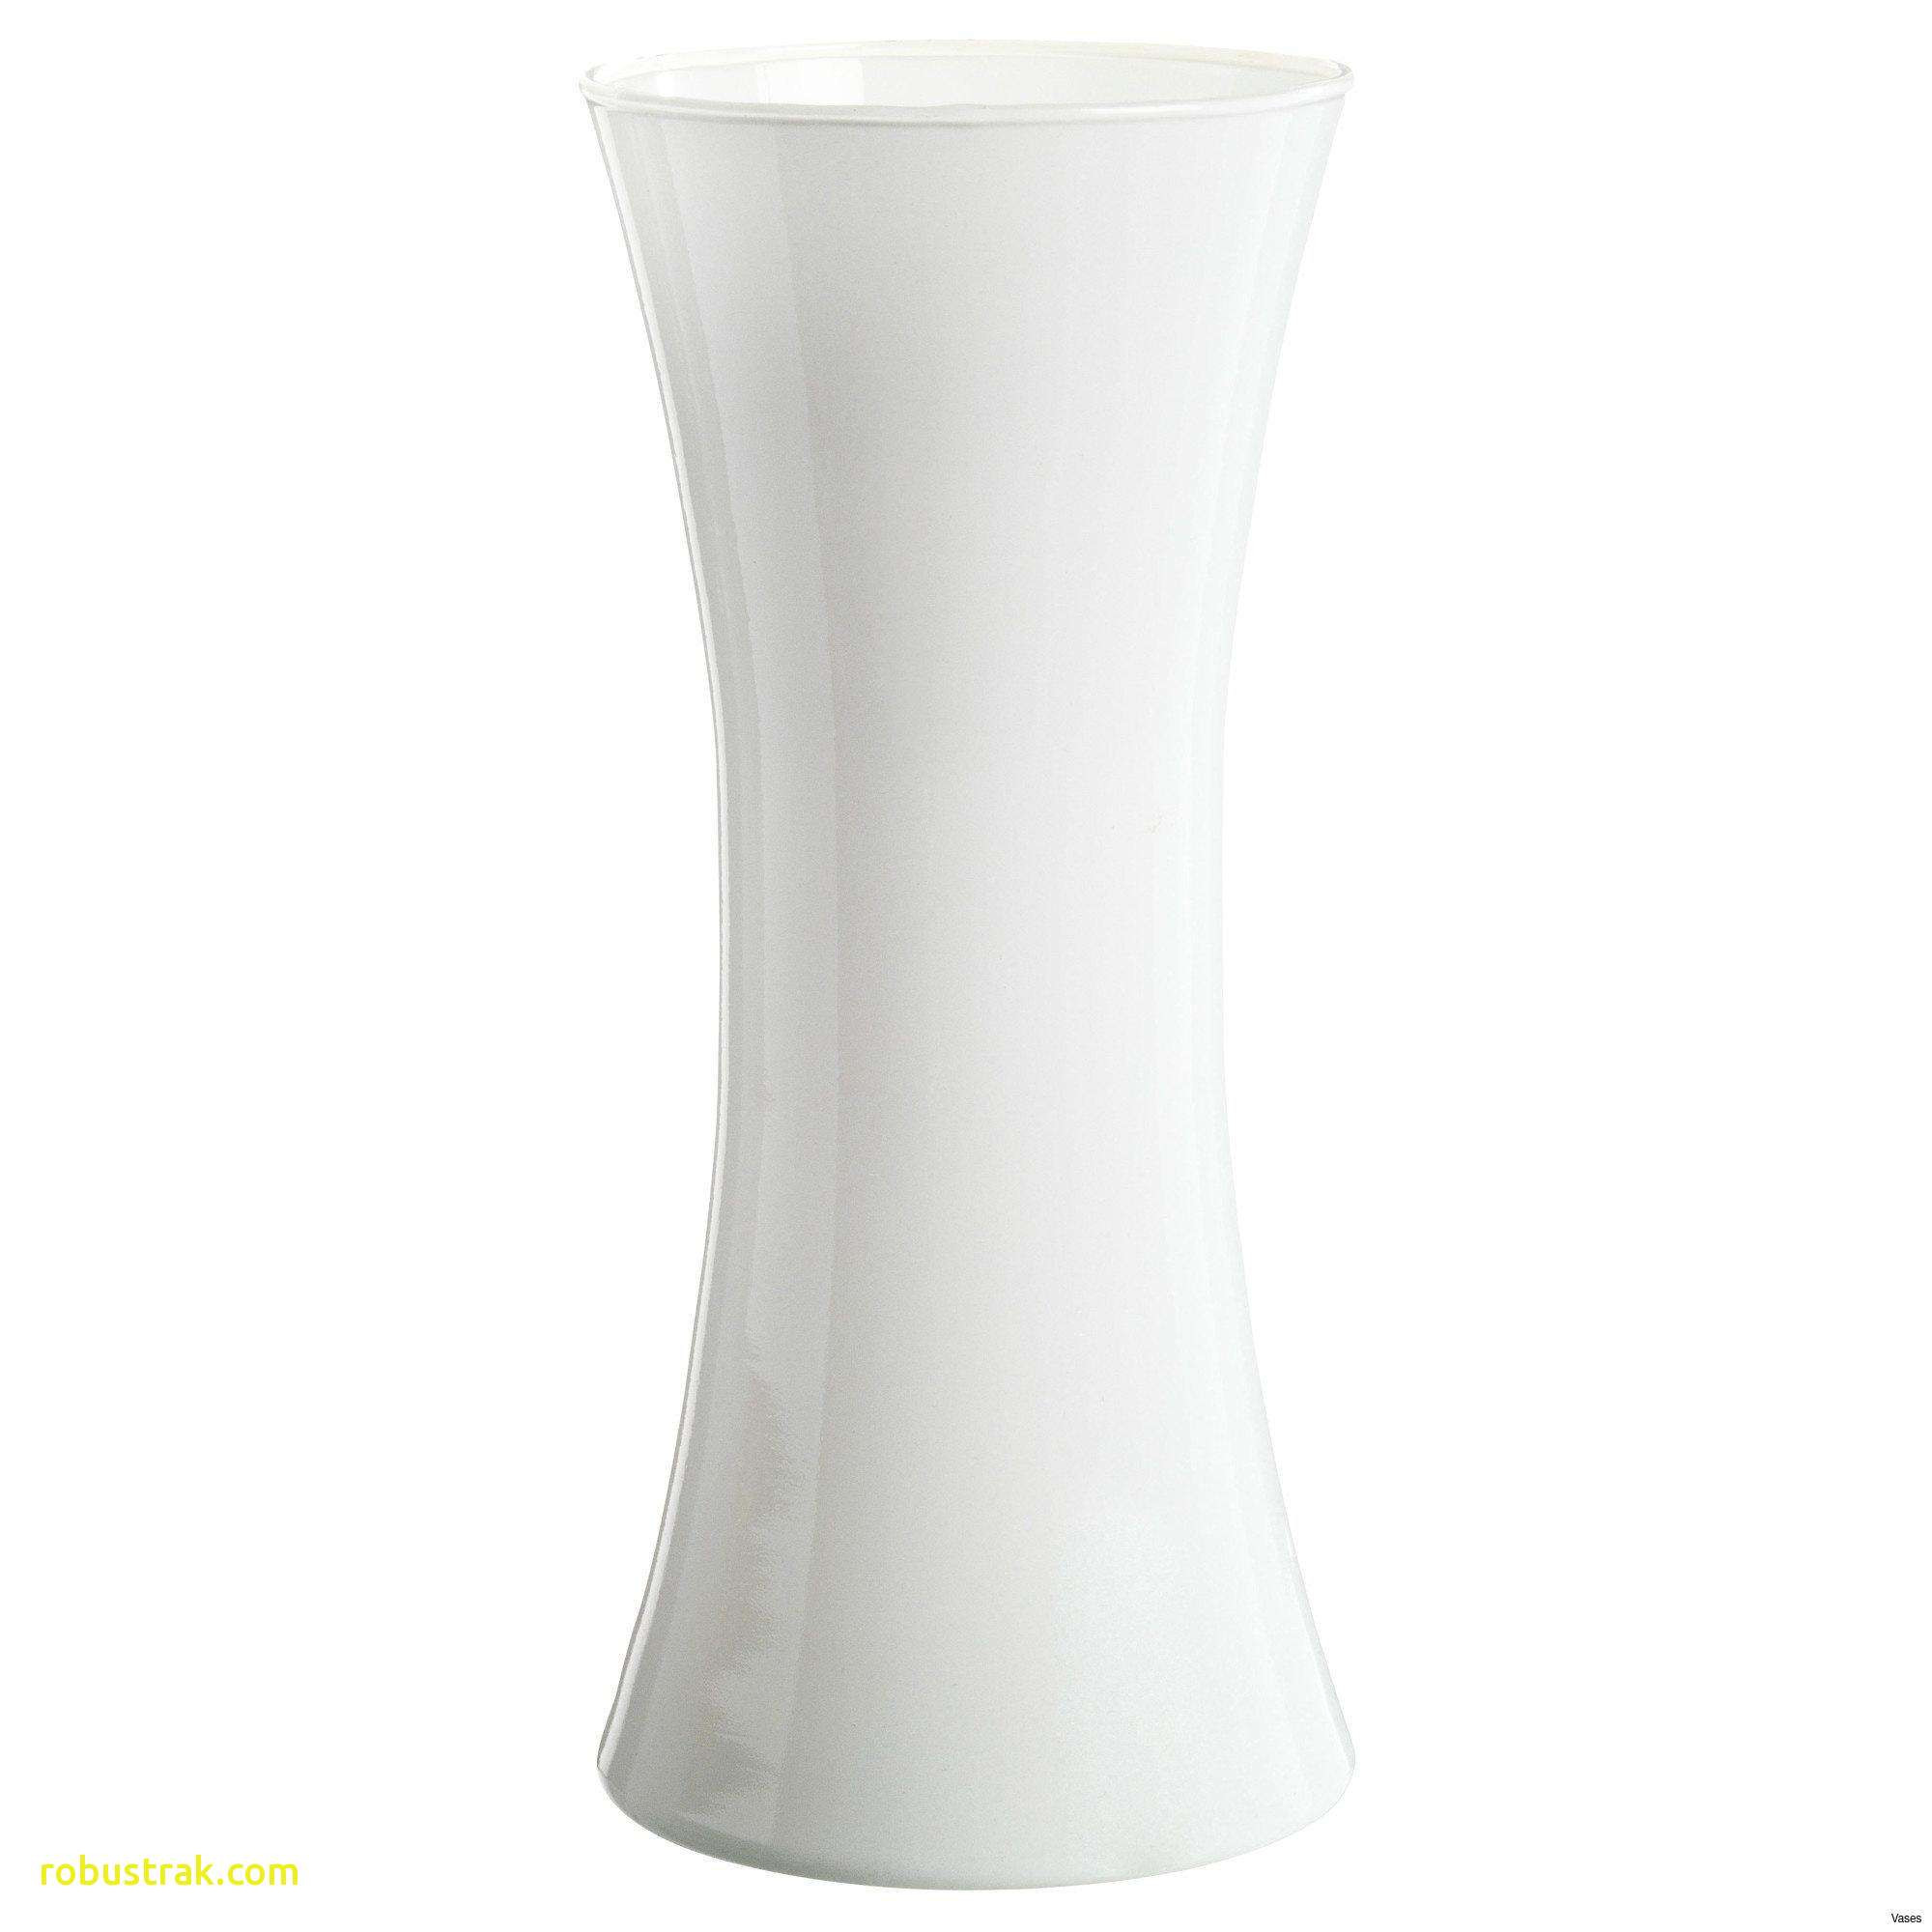 floor vases ikea of best of living room pictures home design ideas for full size of living room tall black vase awesome living room ikea vases new pe size